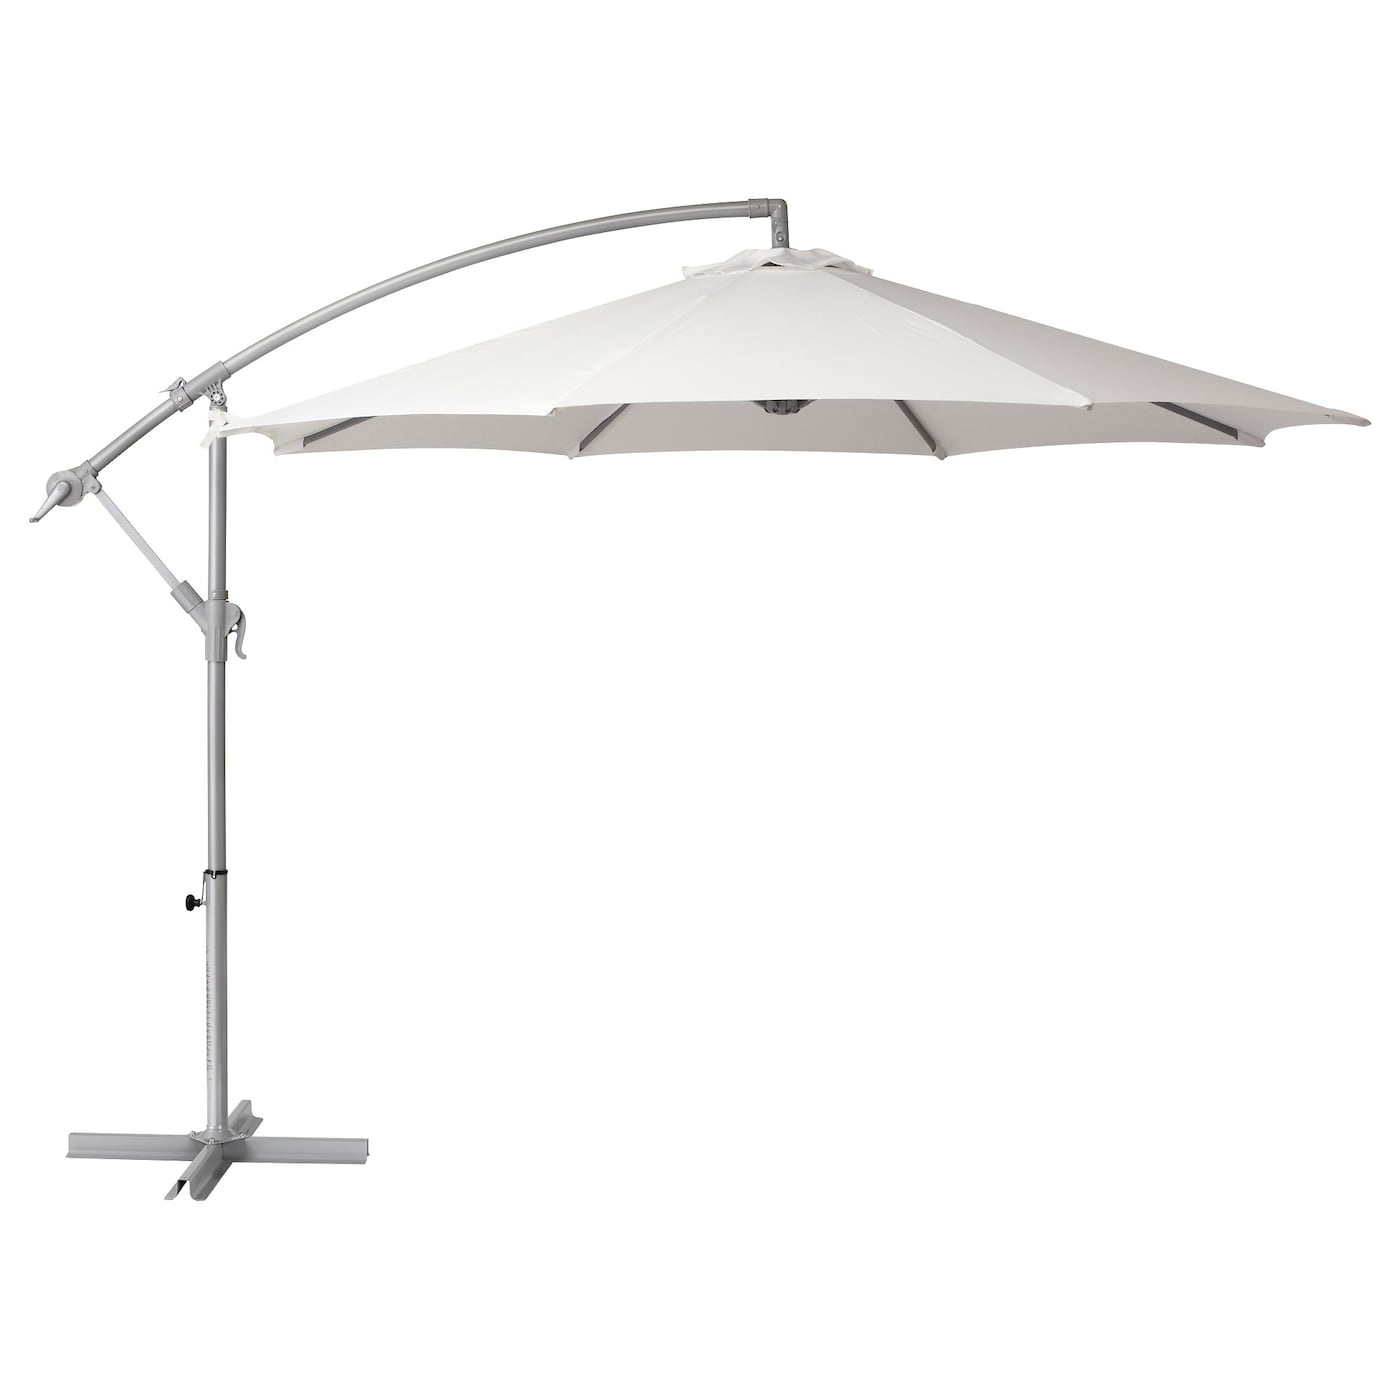 IKEA BAGGÖN parasol, hanging The parasol is easy to open or close by using the crank.